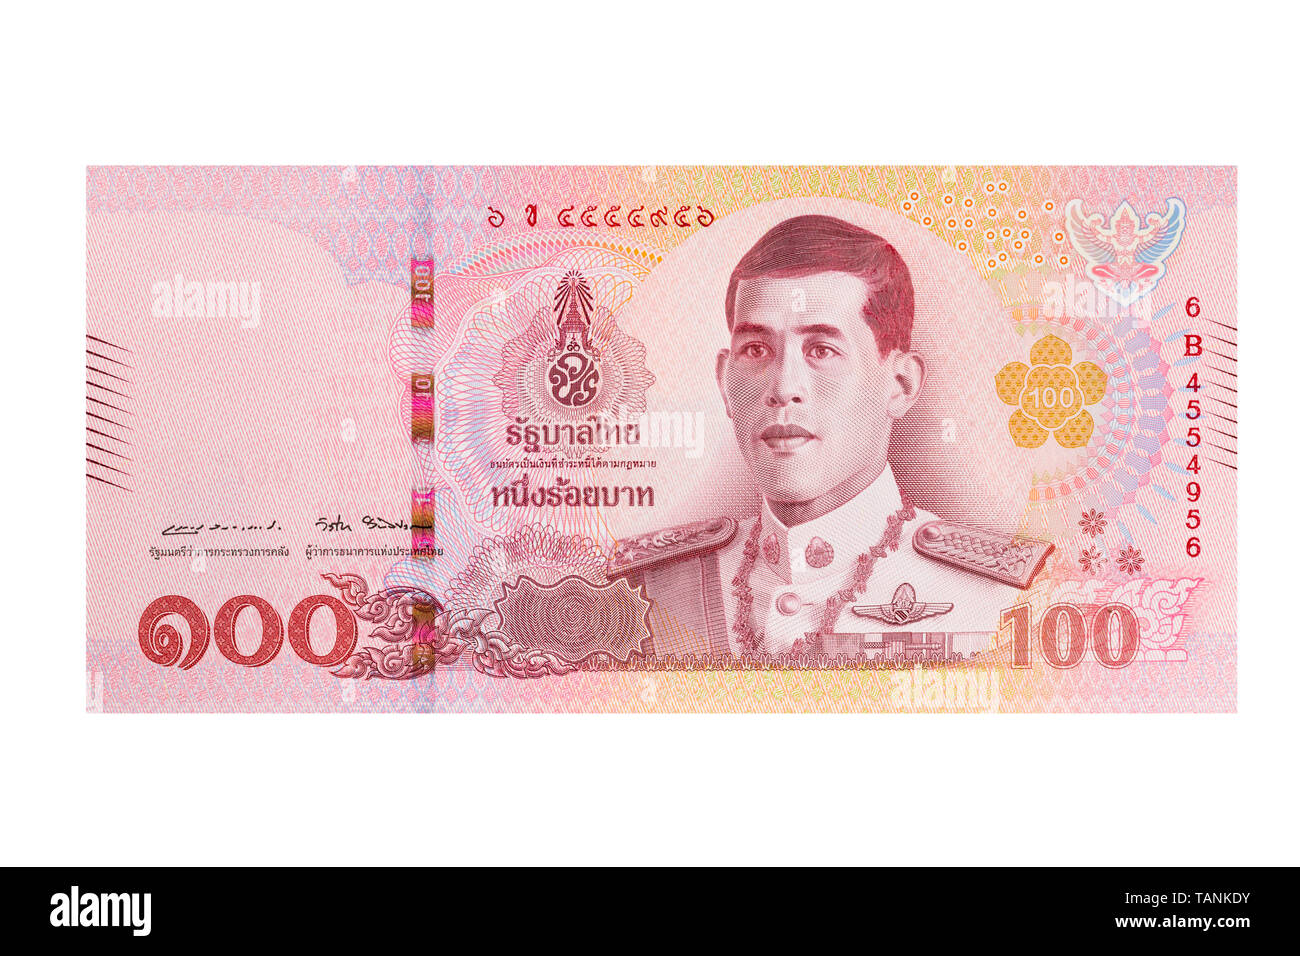 One hundred thai Baht note on a white background - Stock Image